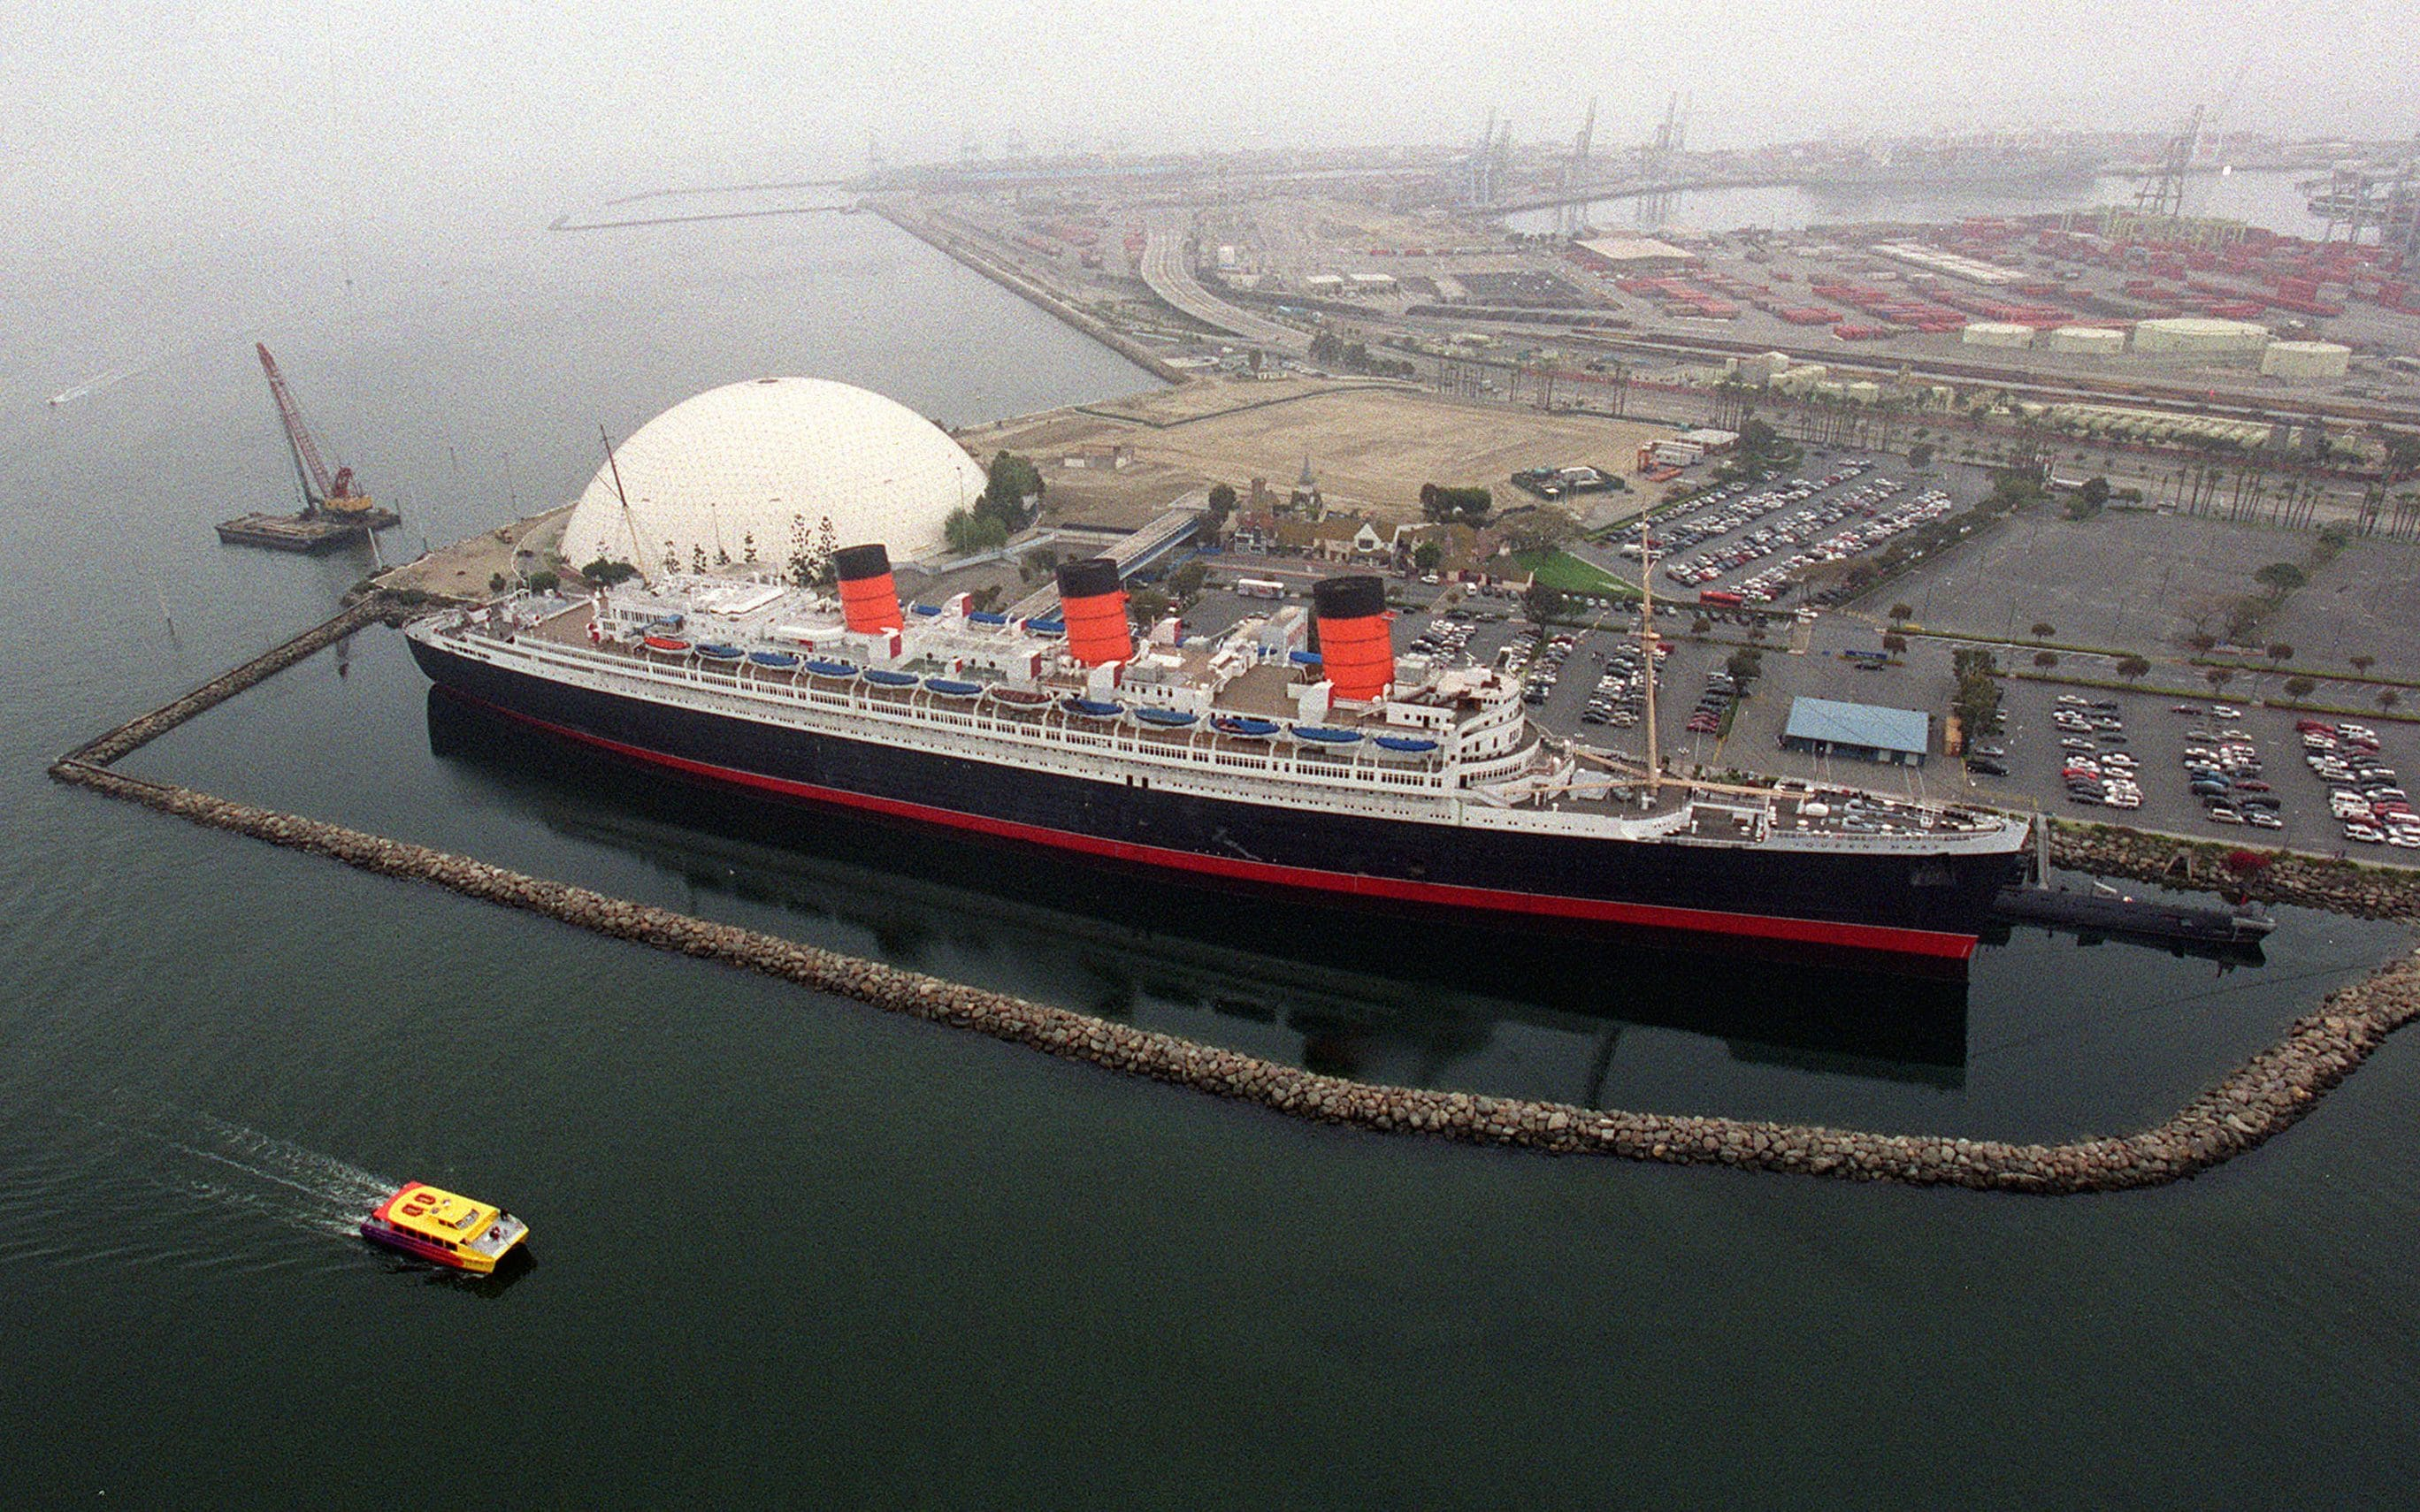 Queen Mary Ship Corroded Fixes Could Near 300 Million